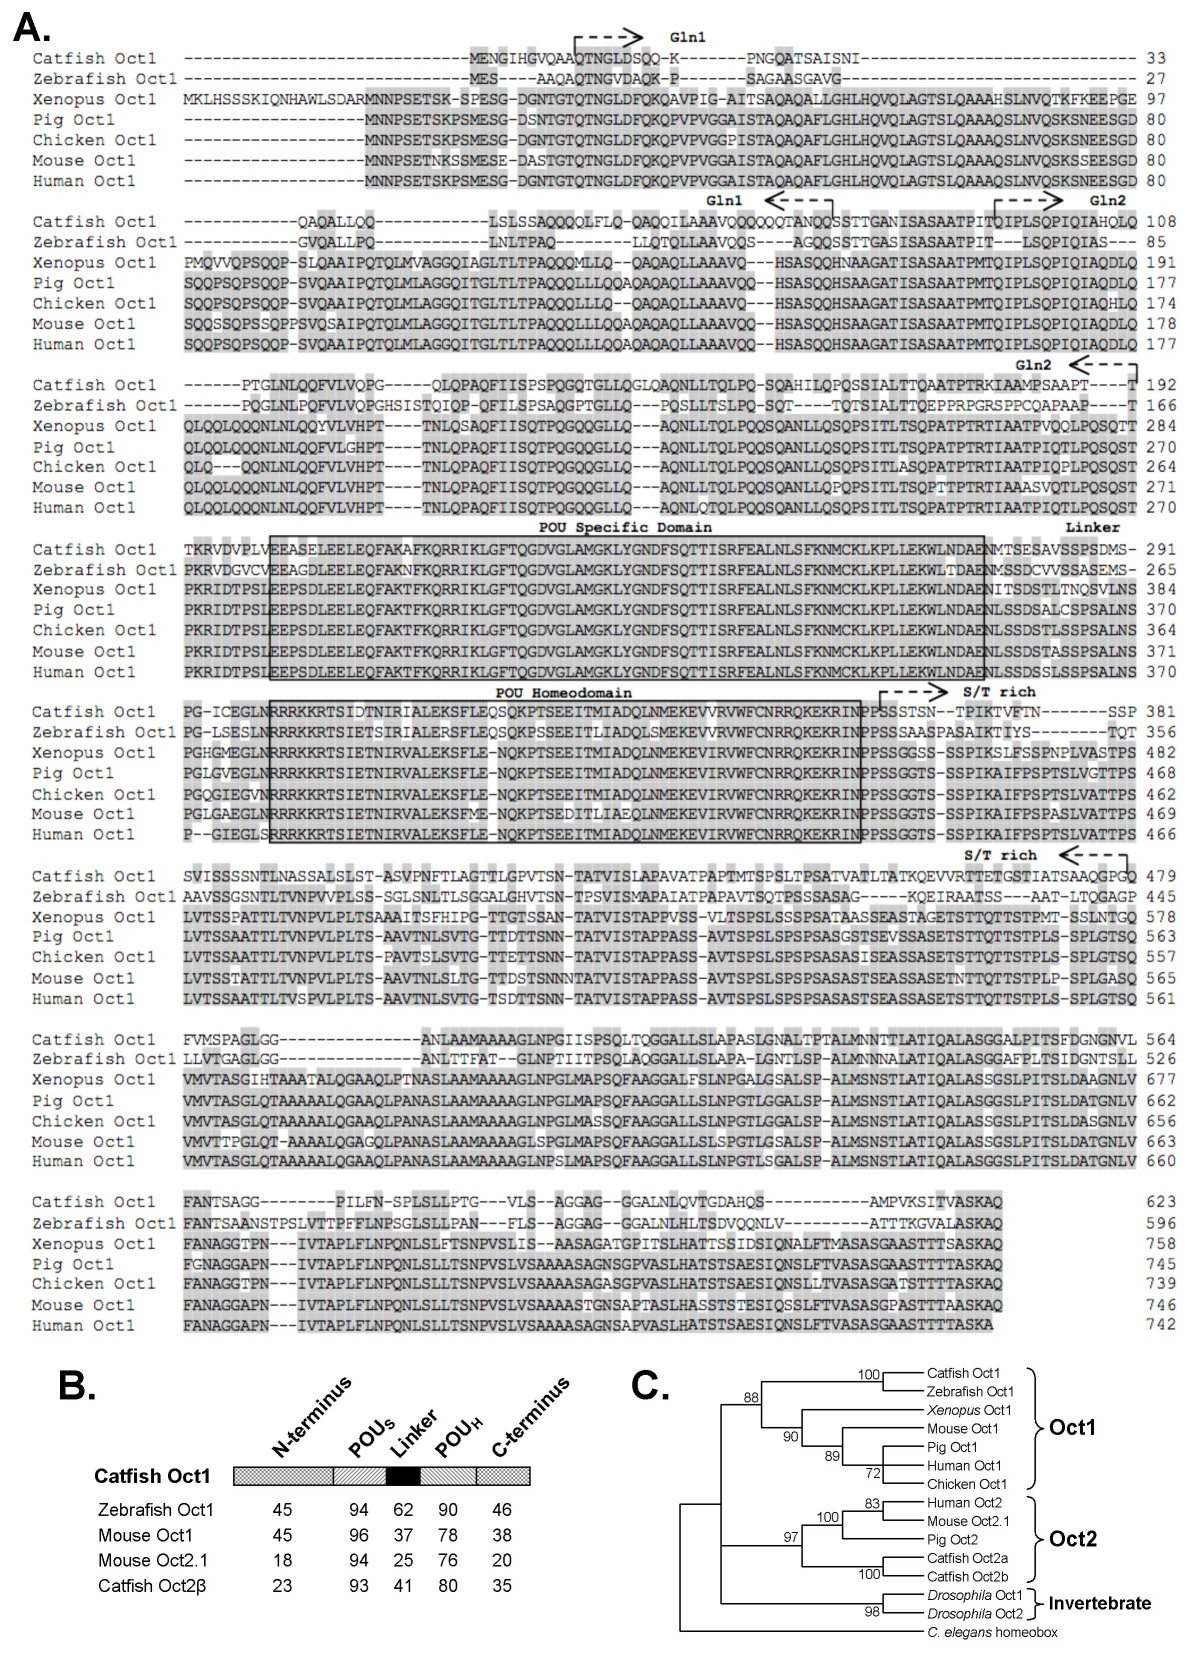 http://static-content.springer.com/image/art%3A10.1186%2F1471-2199-8-8/MediaObjects/12867_2006_Article_145_Fig1_HTML.jpg